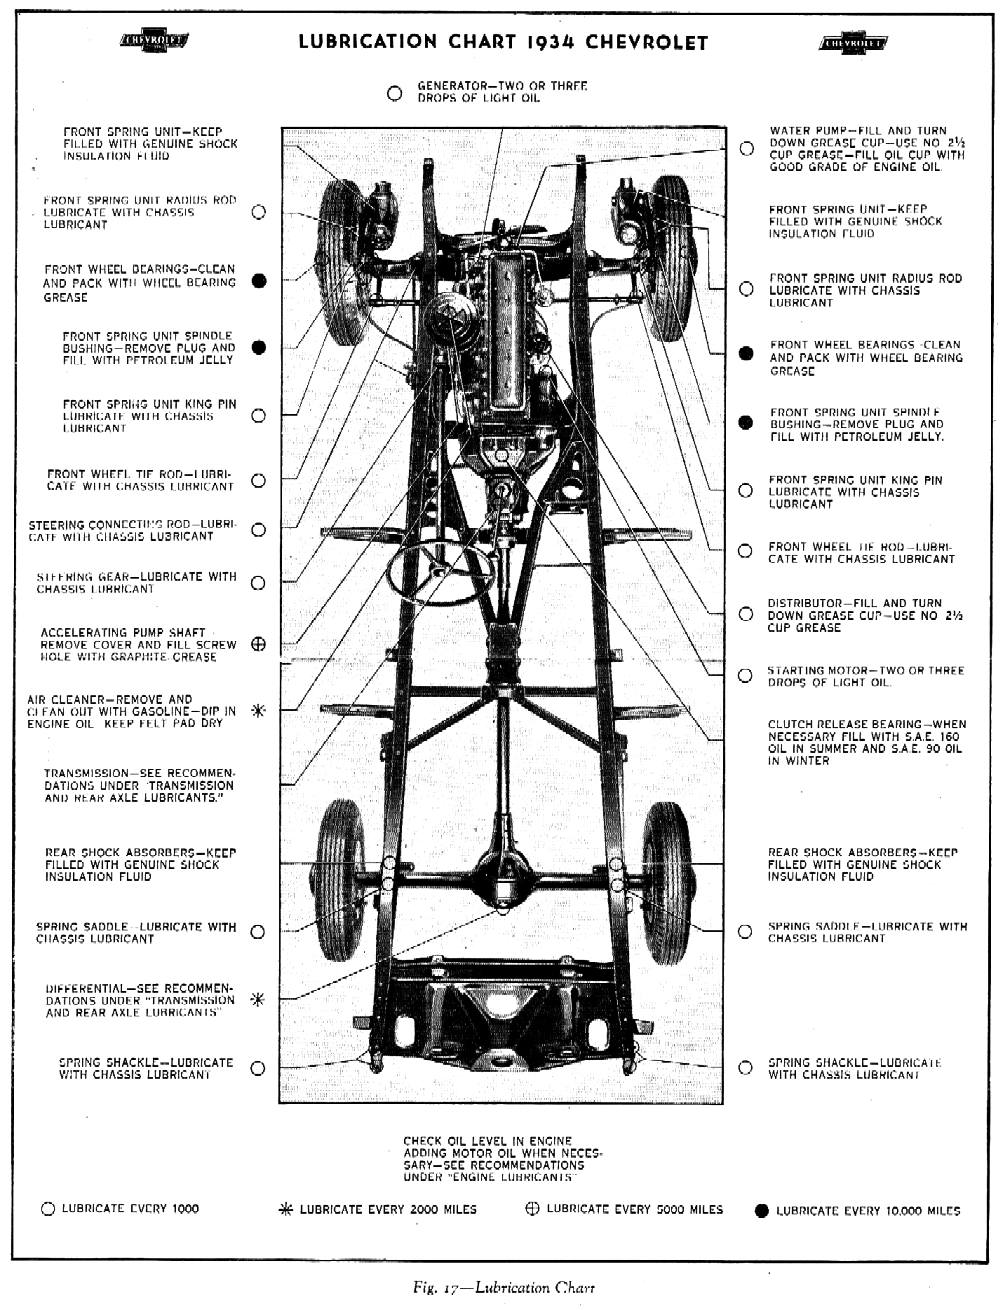 1934 Chevy Owner's Manual